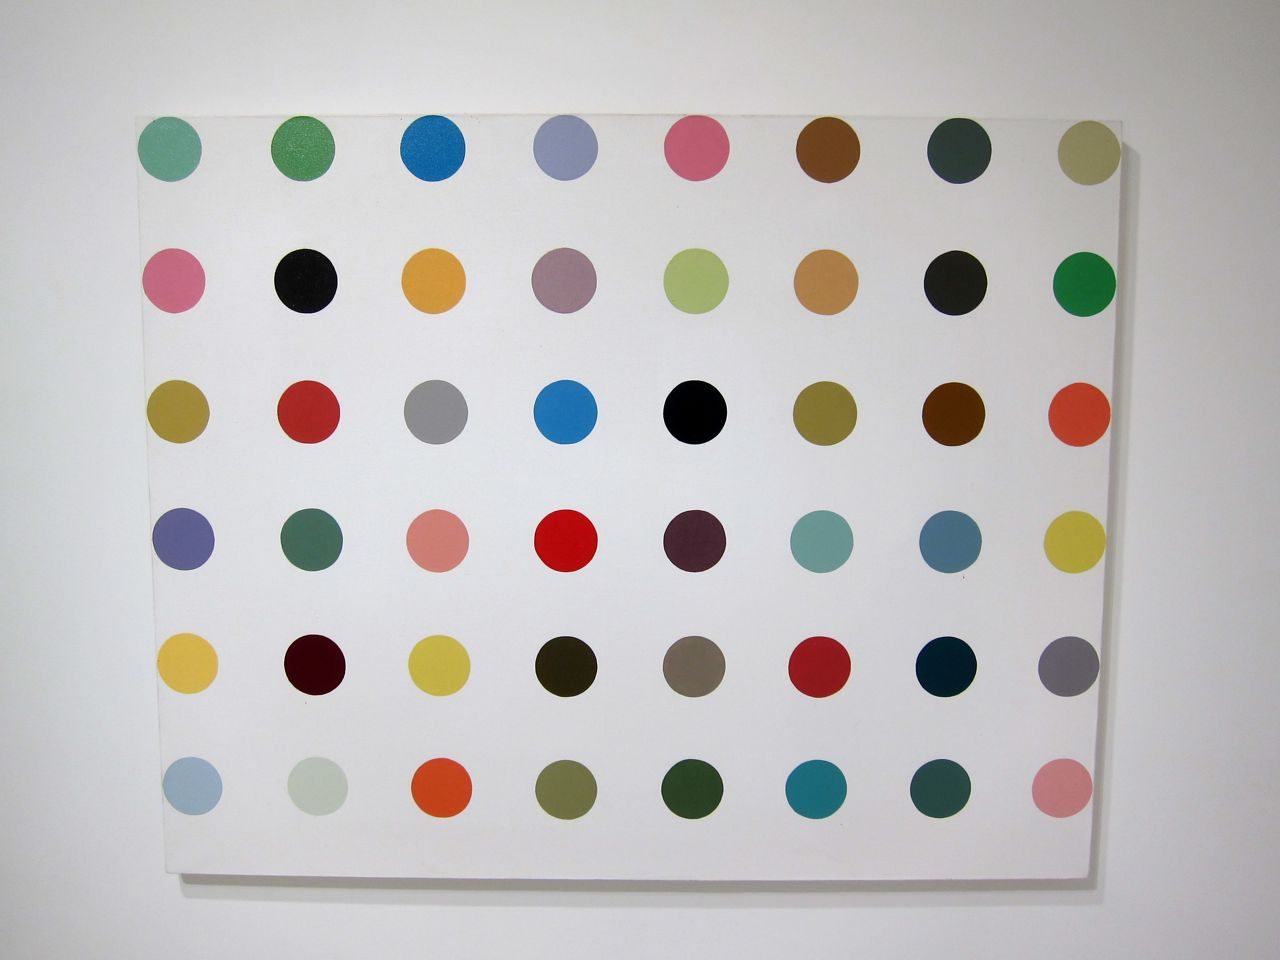 AM Gagosian Spots Challenge Paris 23